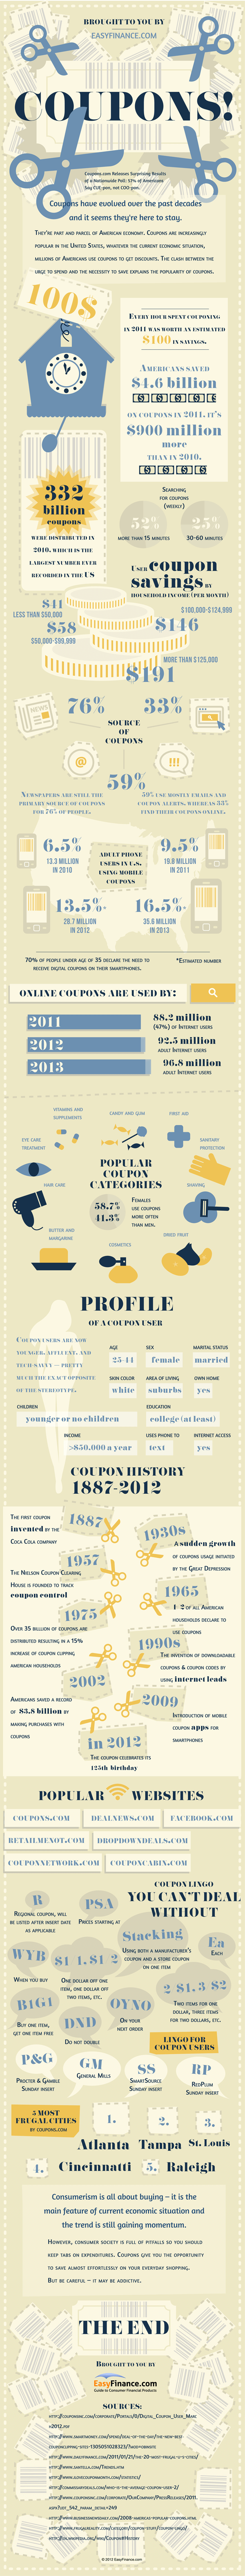 Coupons: Clip your Way to Saving (Infographic)